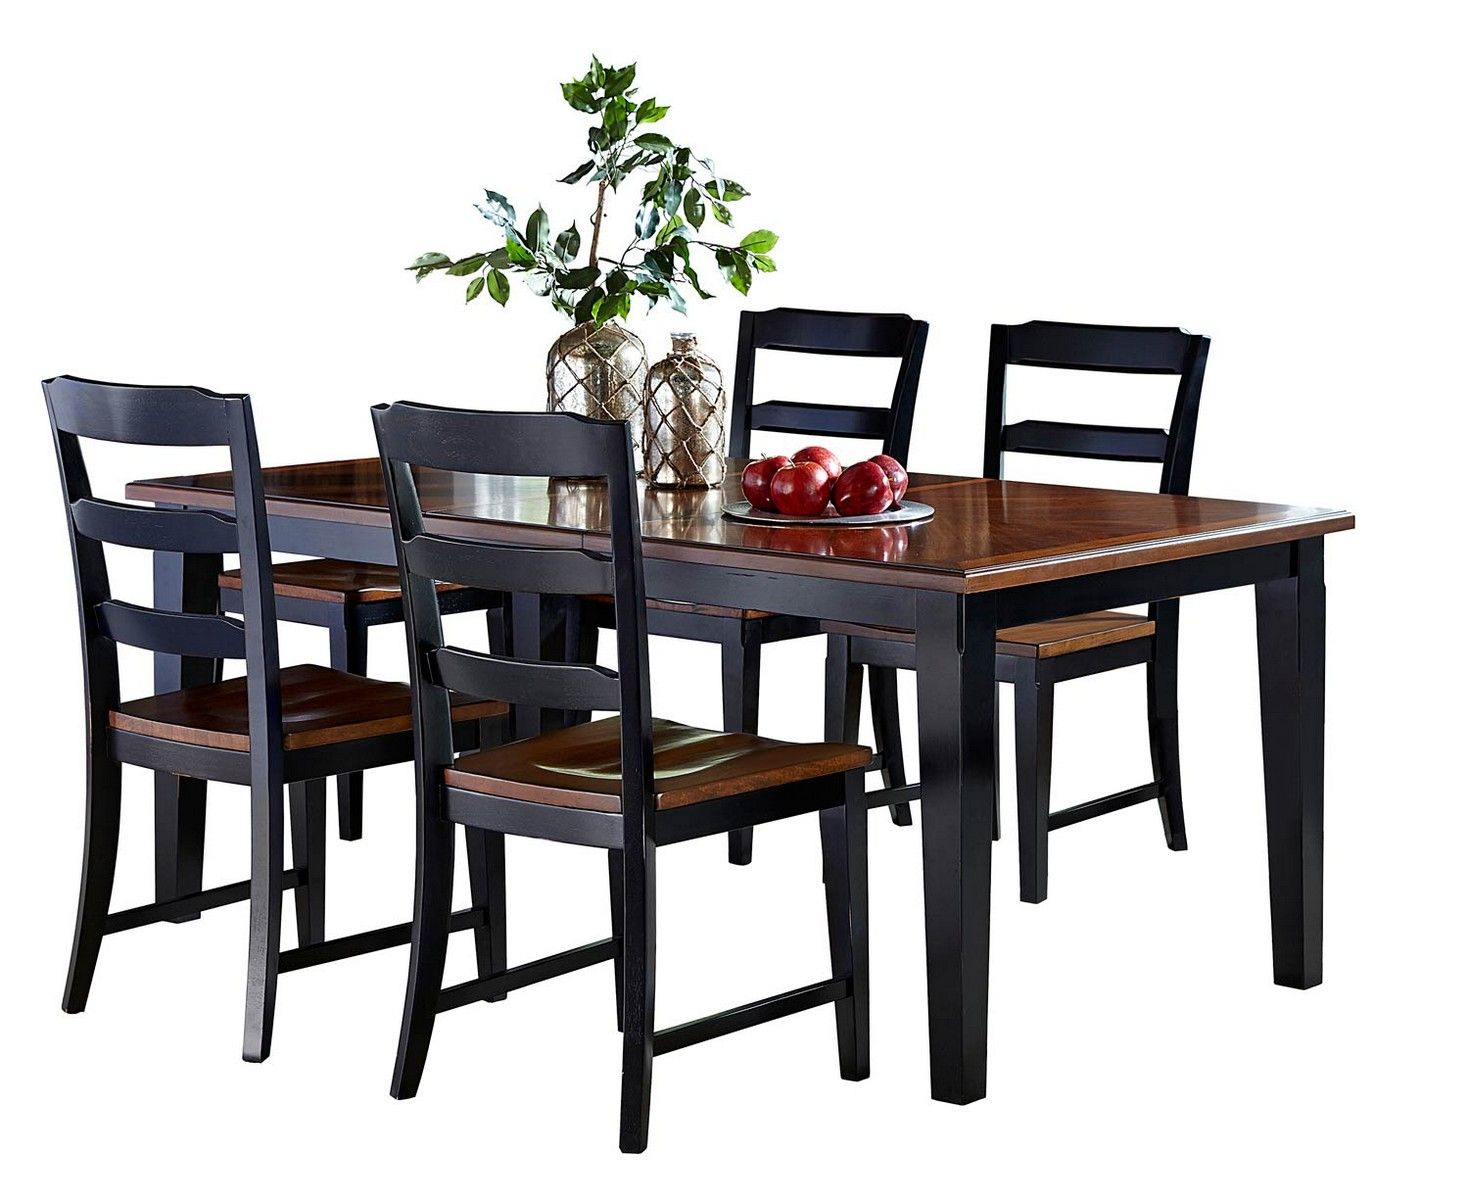 Hillsdale Avalon 5 PC Dining Set - Black/Cherry